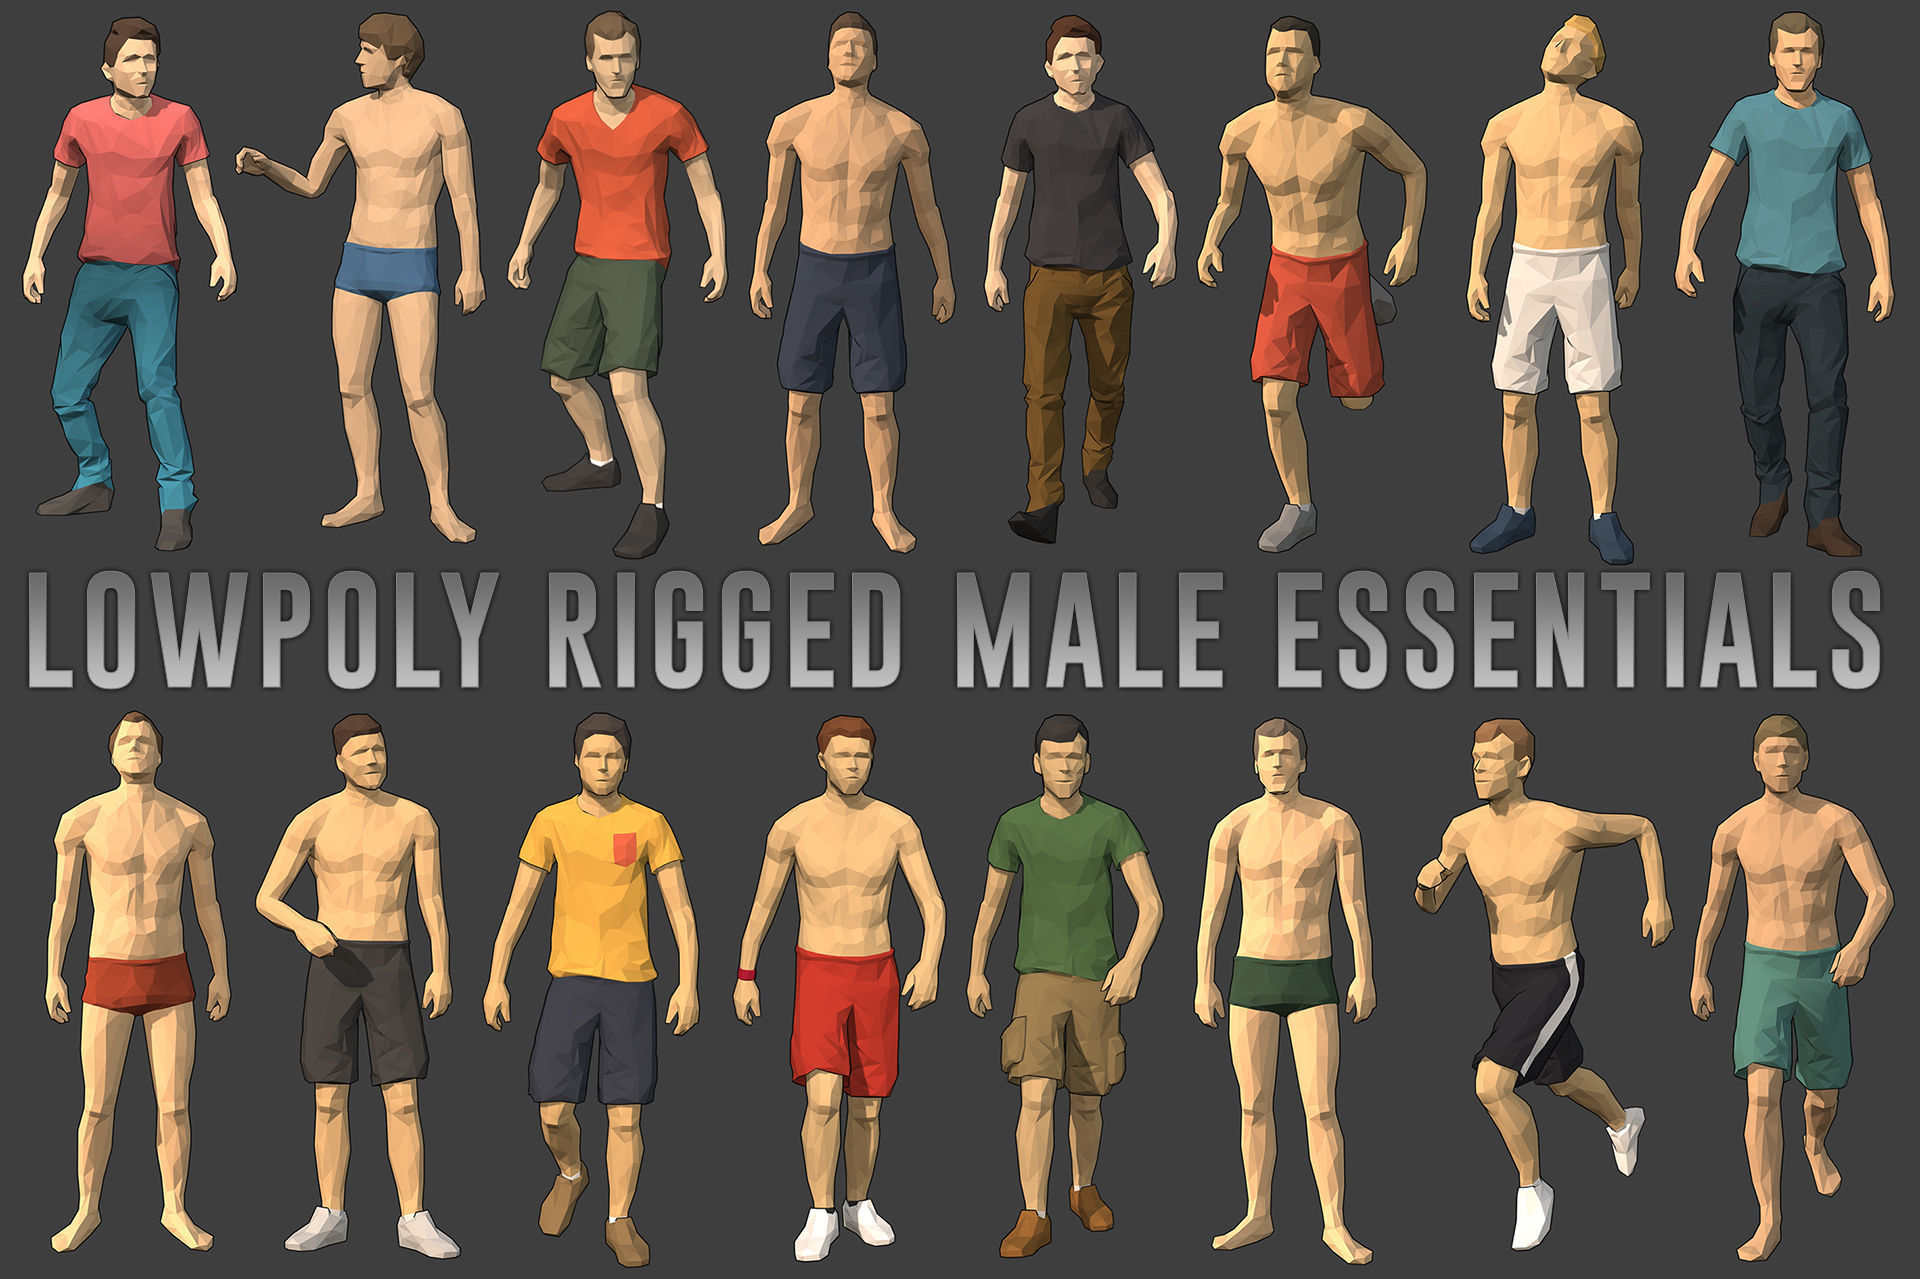 Lowpoly Rigged Male Essentials